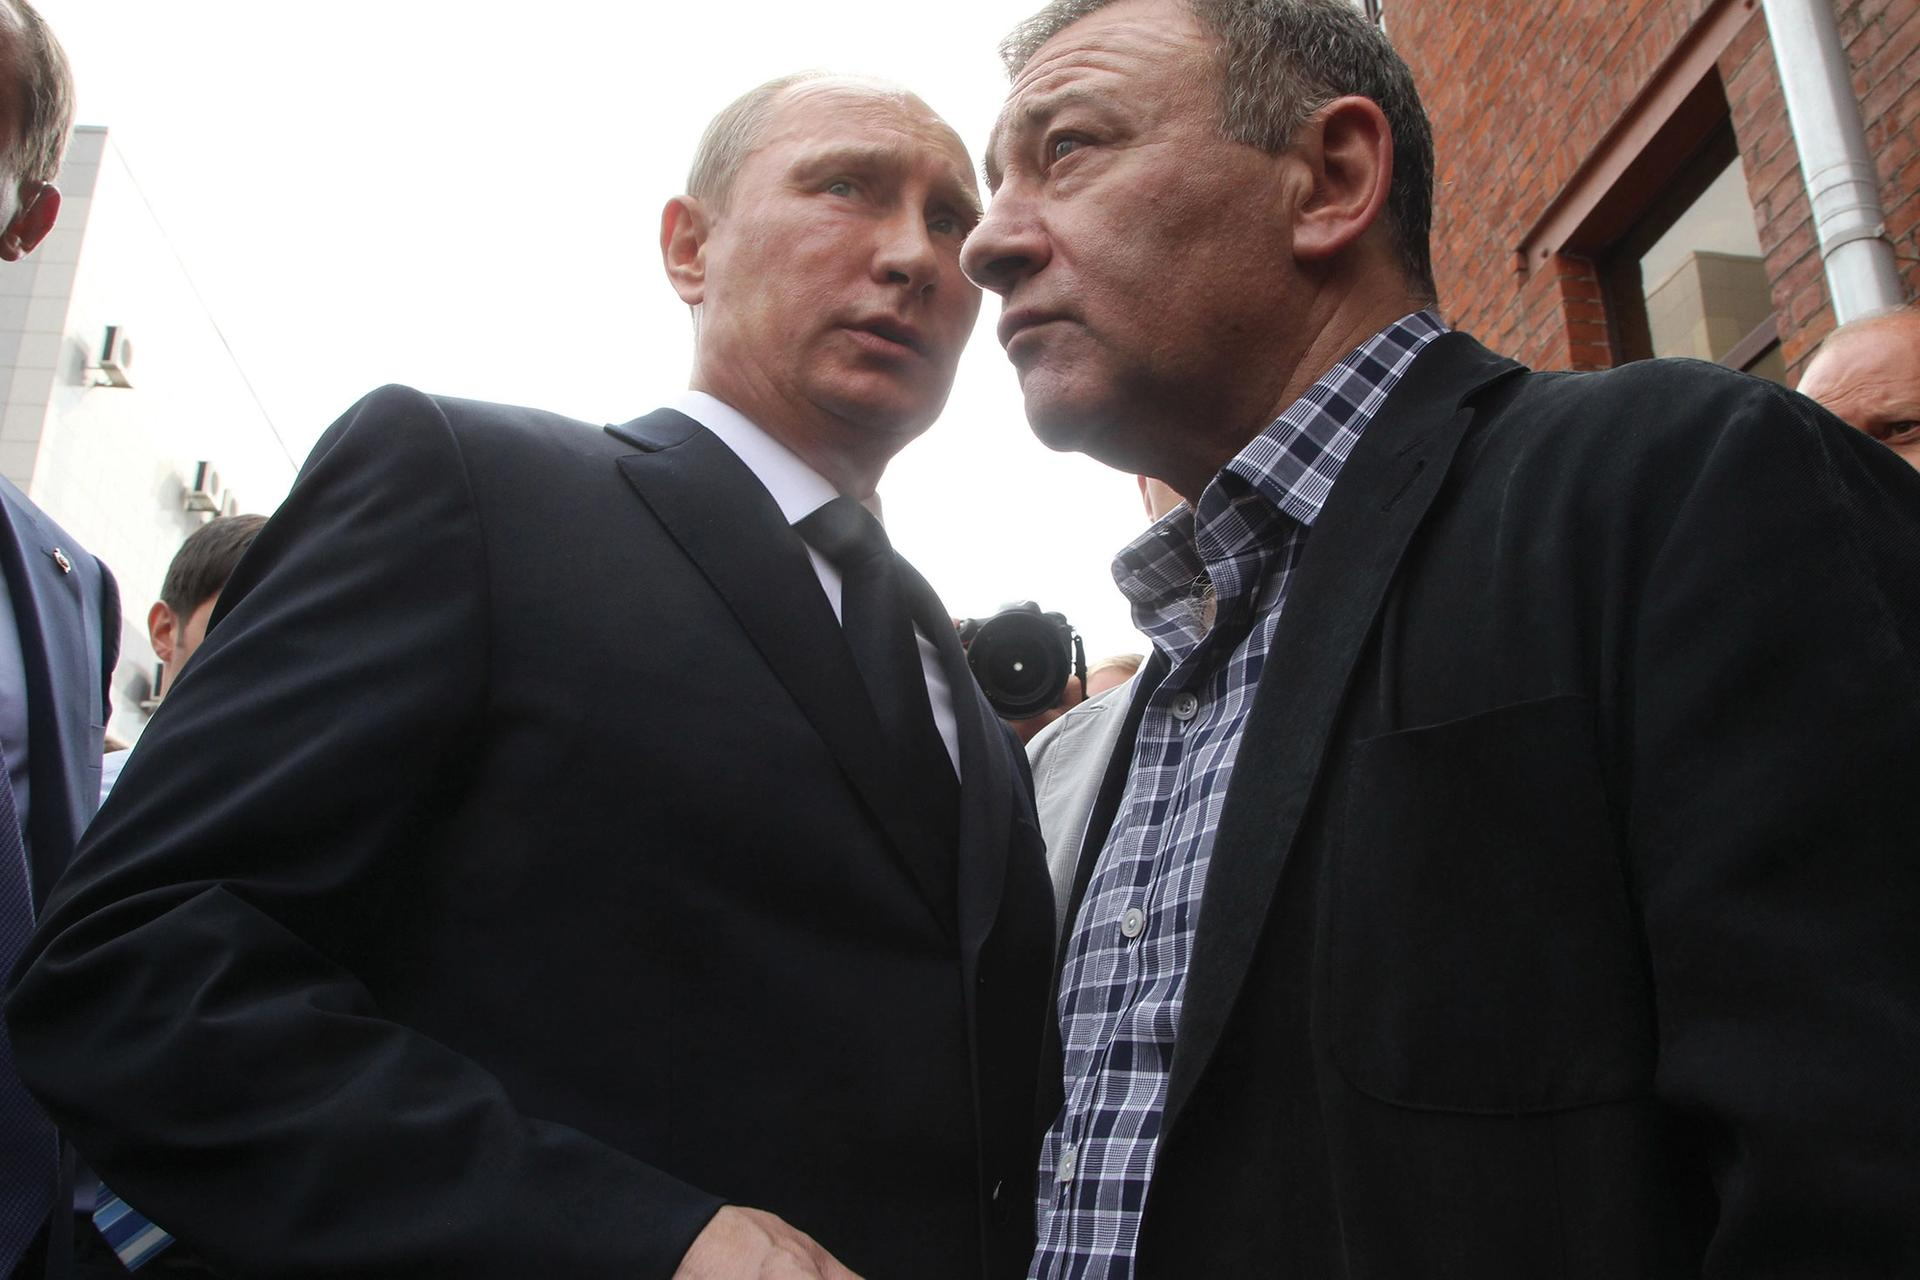 Arkady Rotenberg (right) and his brother Boris, who were named in the Senate report, are close allies of Vladmir Putin (left) Sasha Mordovets/Getty Images